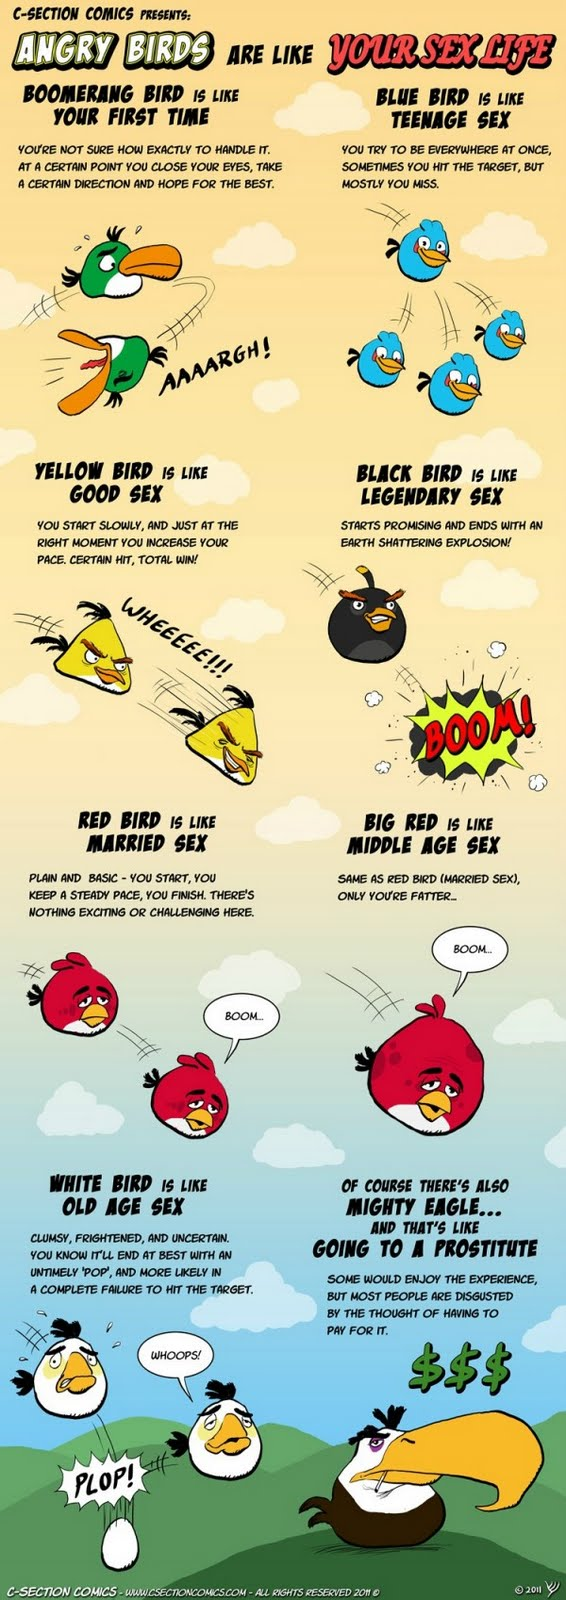 Angry Birds y tu vida sexual